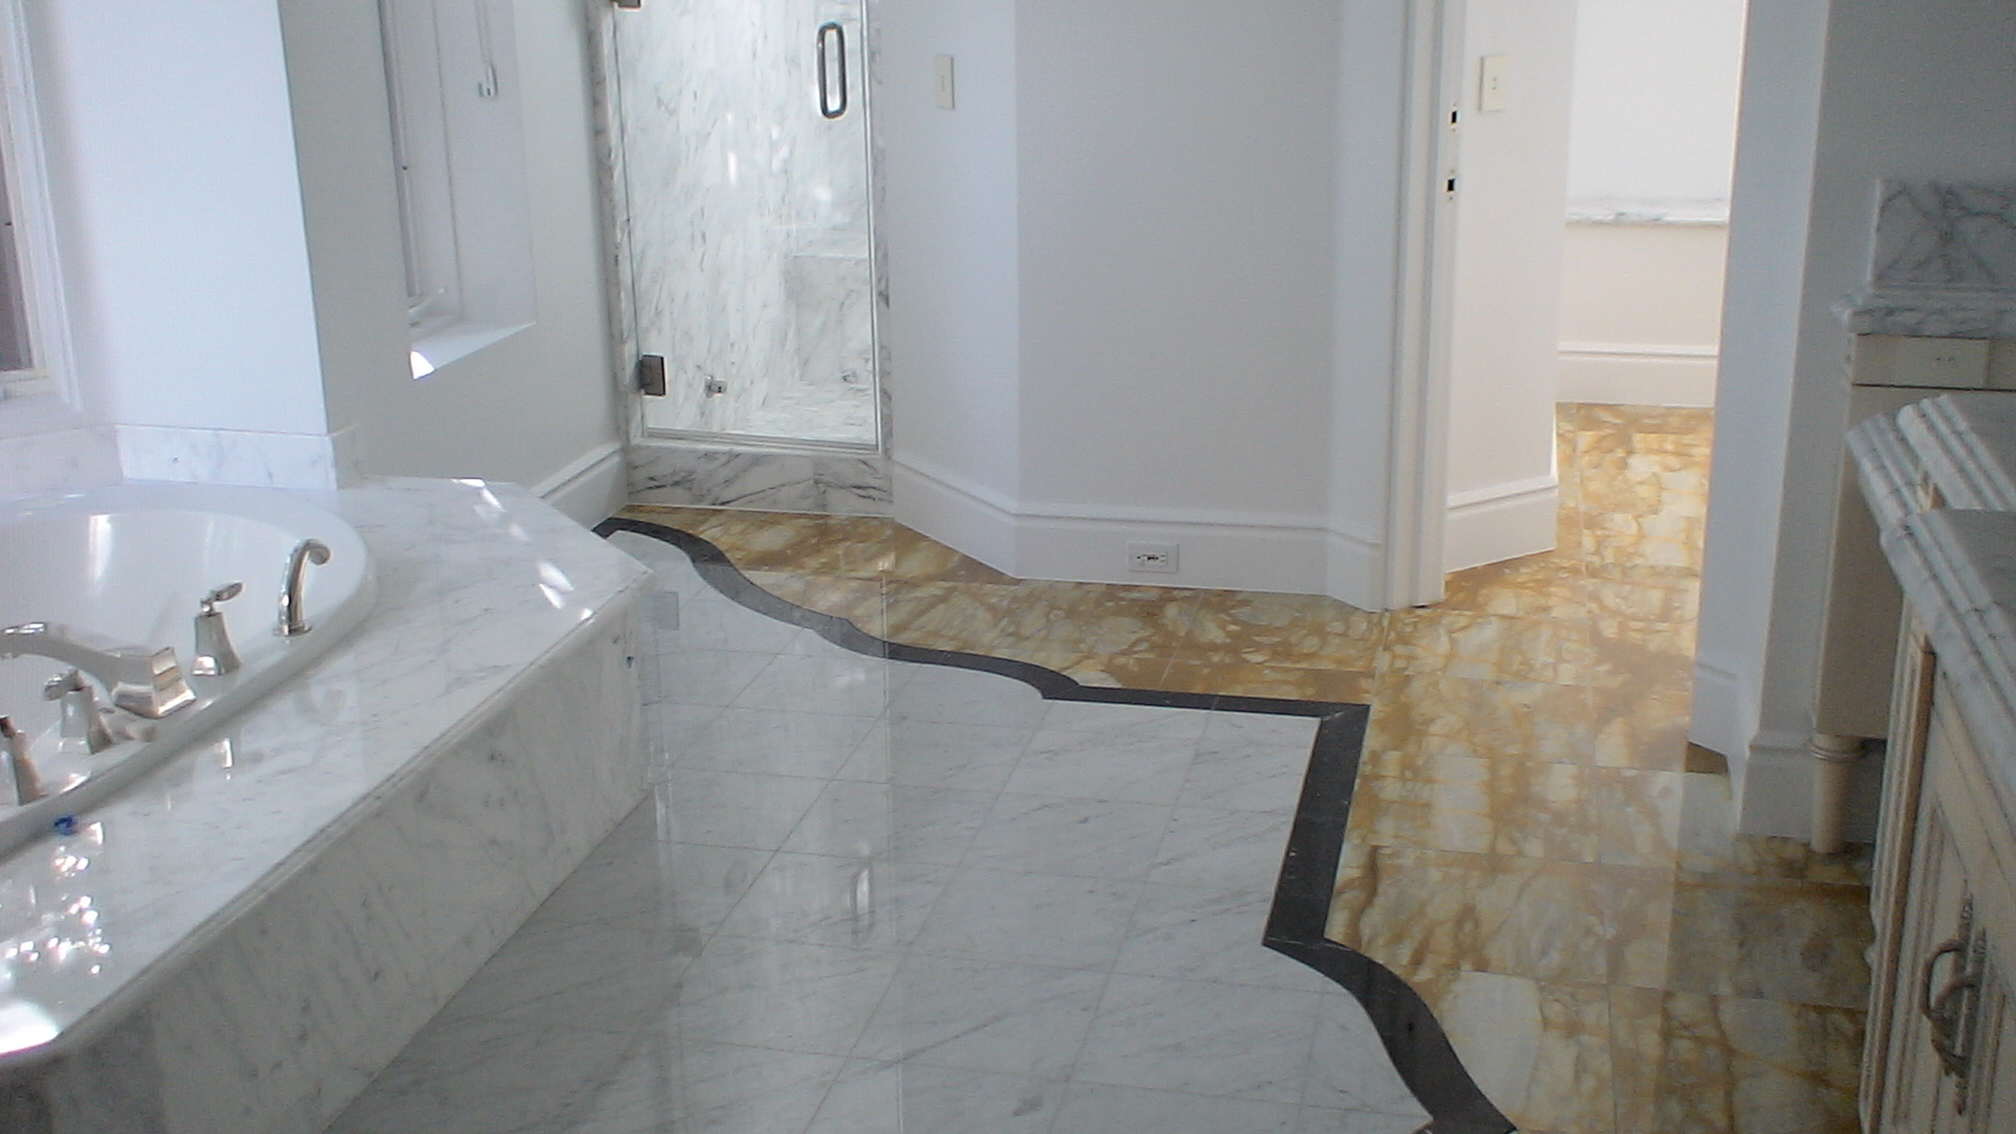 Specifying Movement Joints And Sealants For Tile And Stone